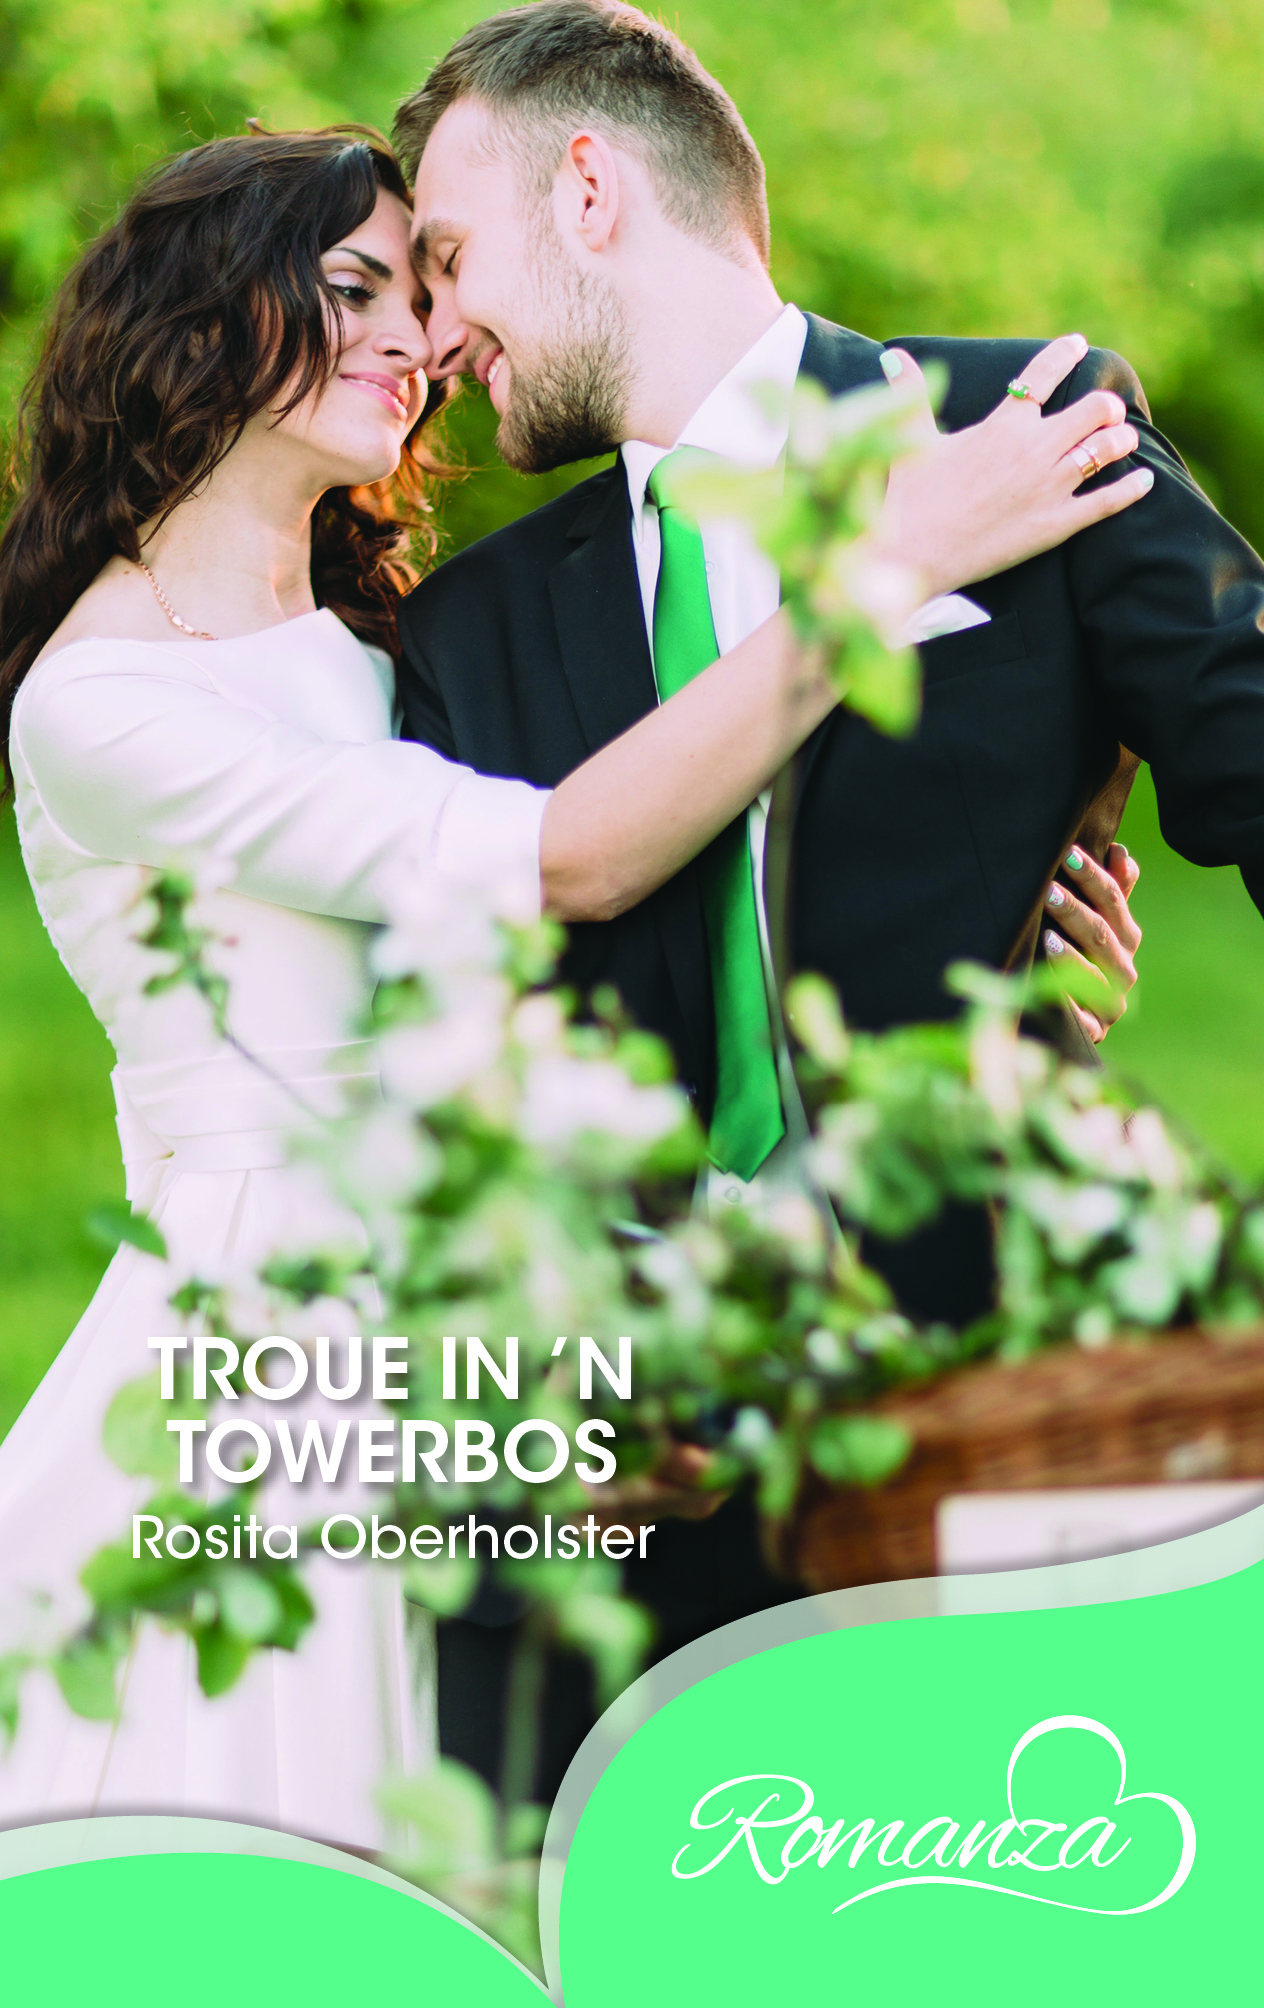 troue-in-n-towerbos-voorblad_high-res